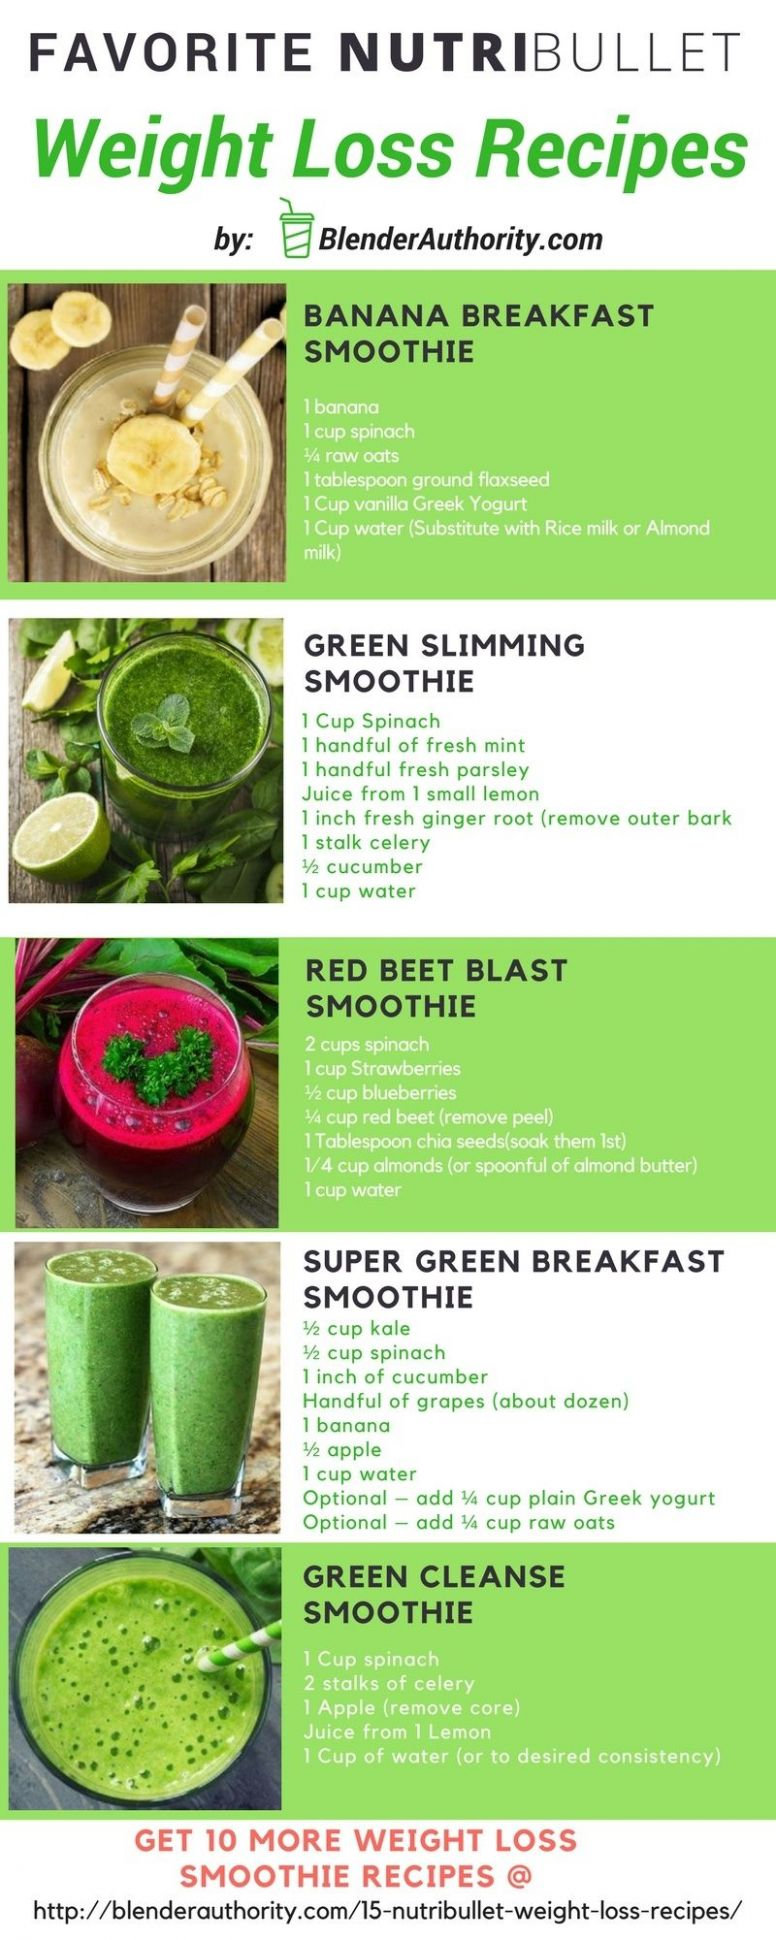 Pin on Weight Loss Smoothies - Smoothie Recipes For Weight Loss Meal Replacement